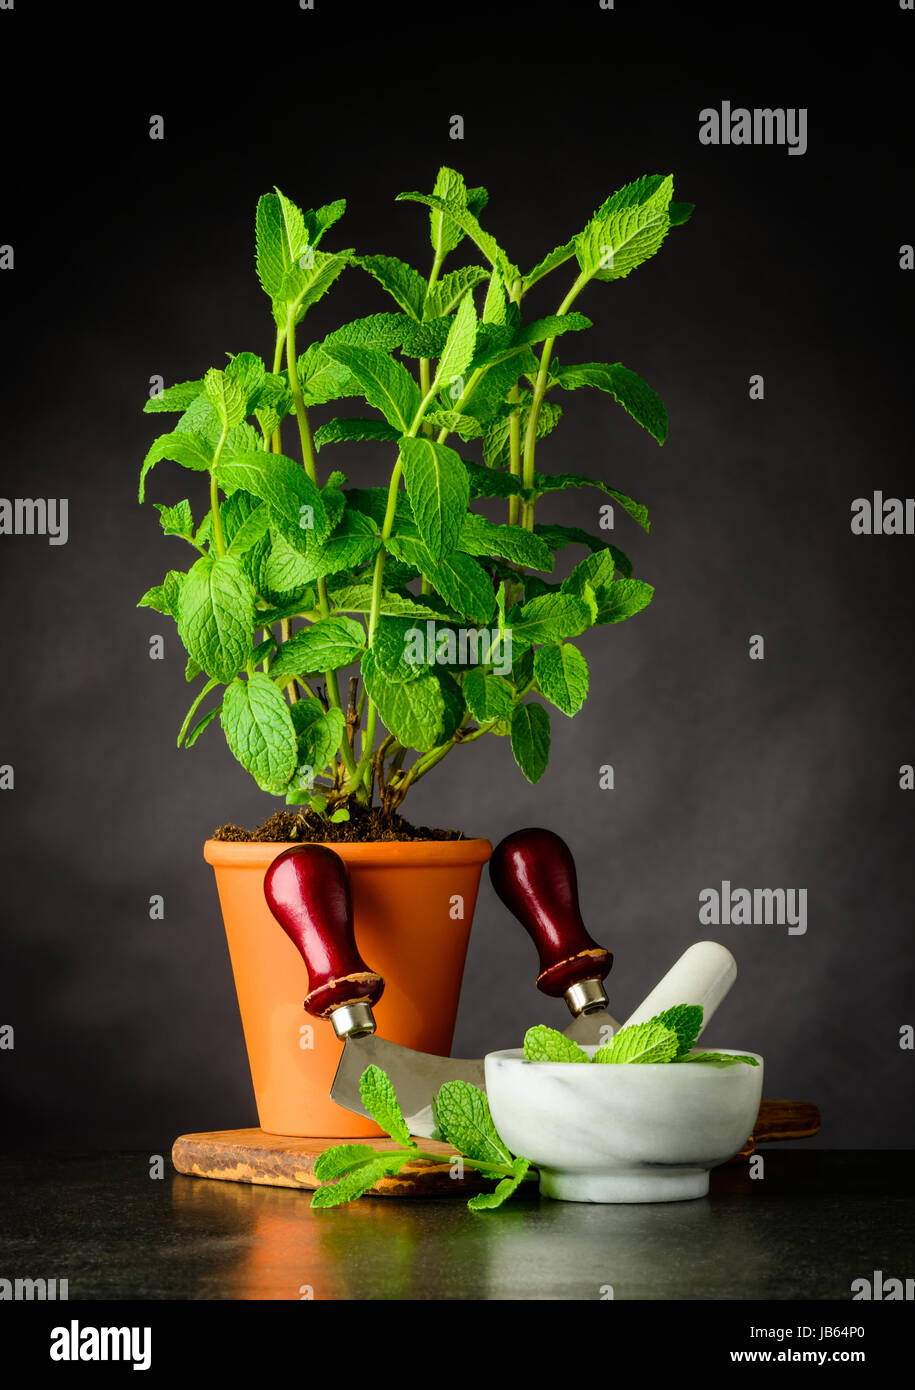 Pint Plant Growing in Pottery Pot with Pestle and Mortar and Mezzaluna Herb Chopper Kitchen Utensils - Stock Image